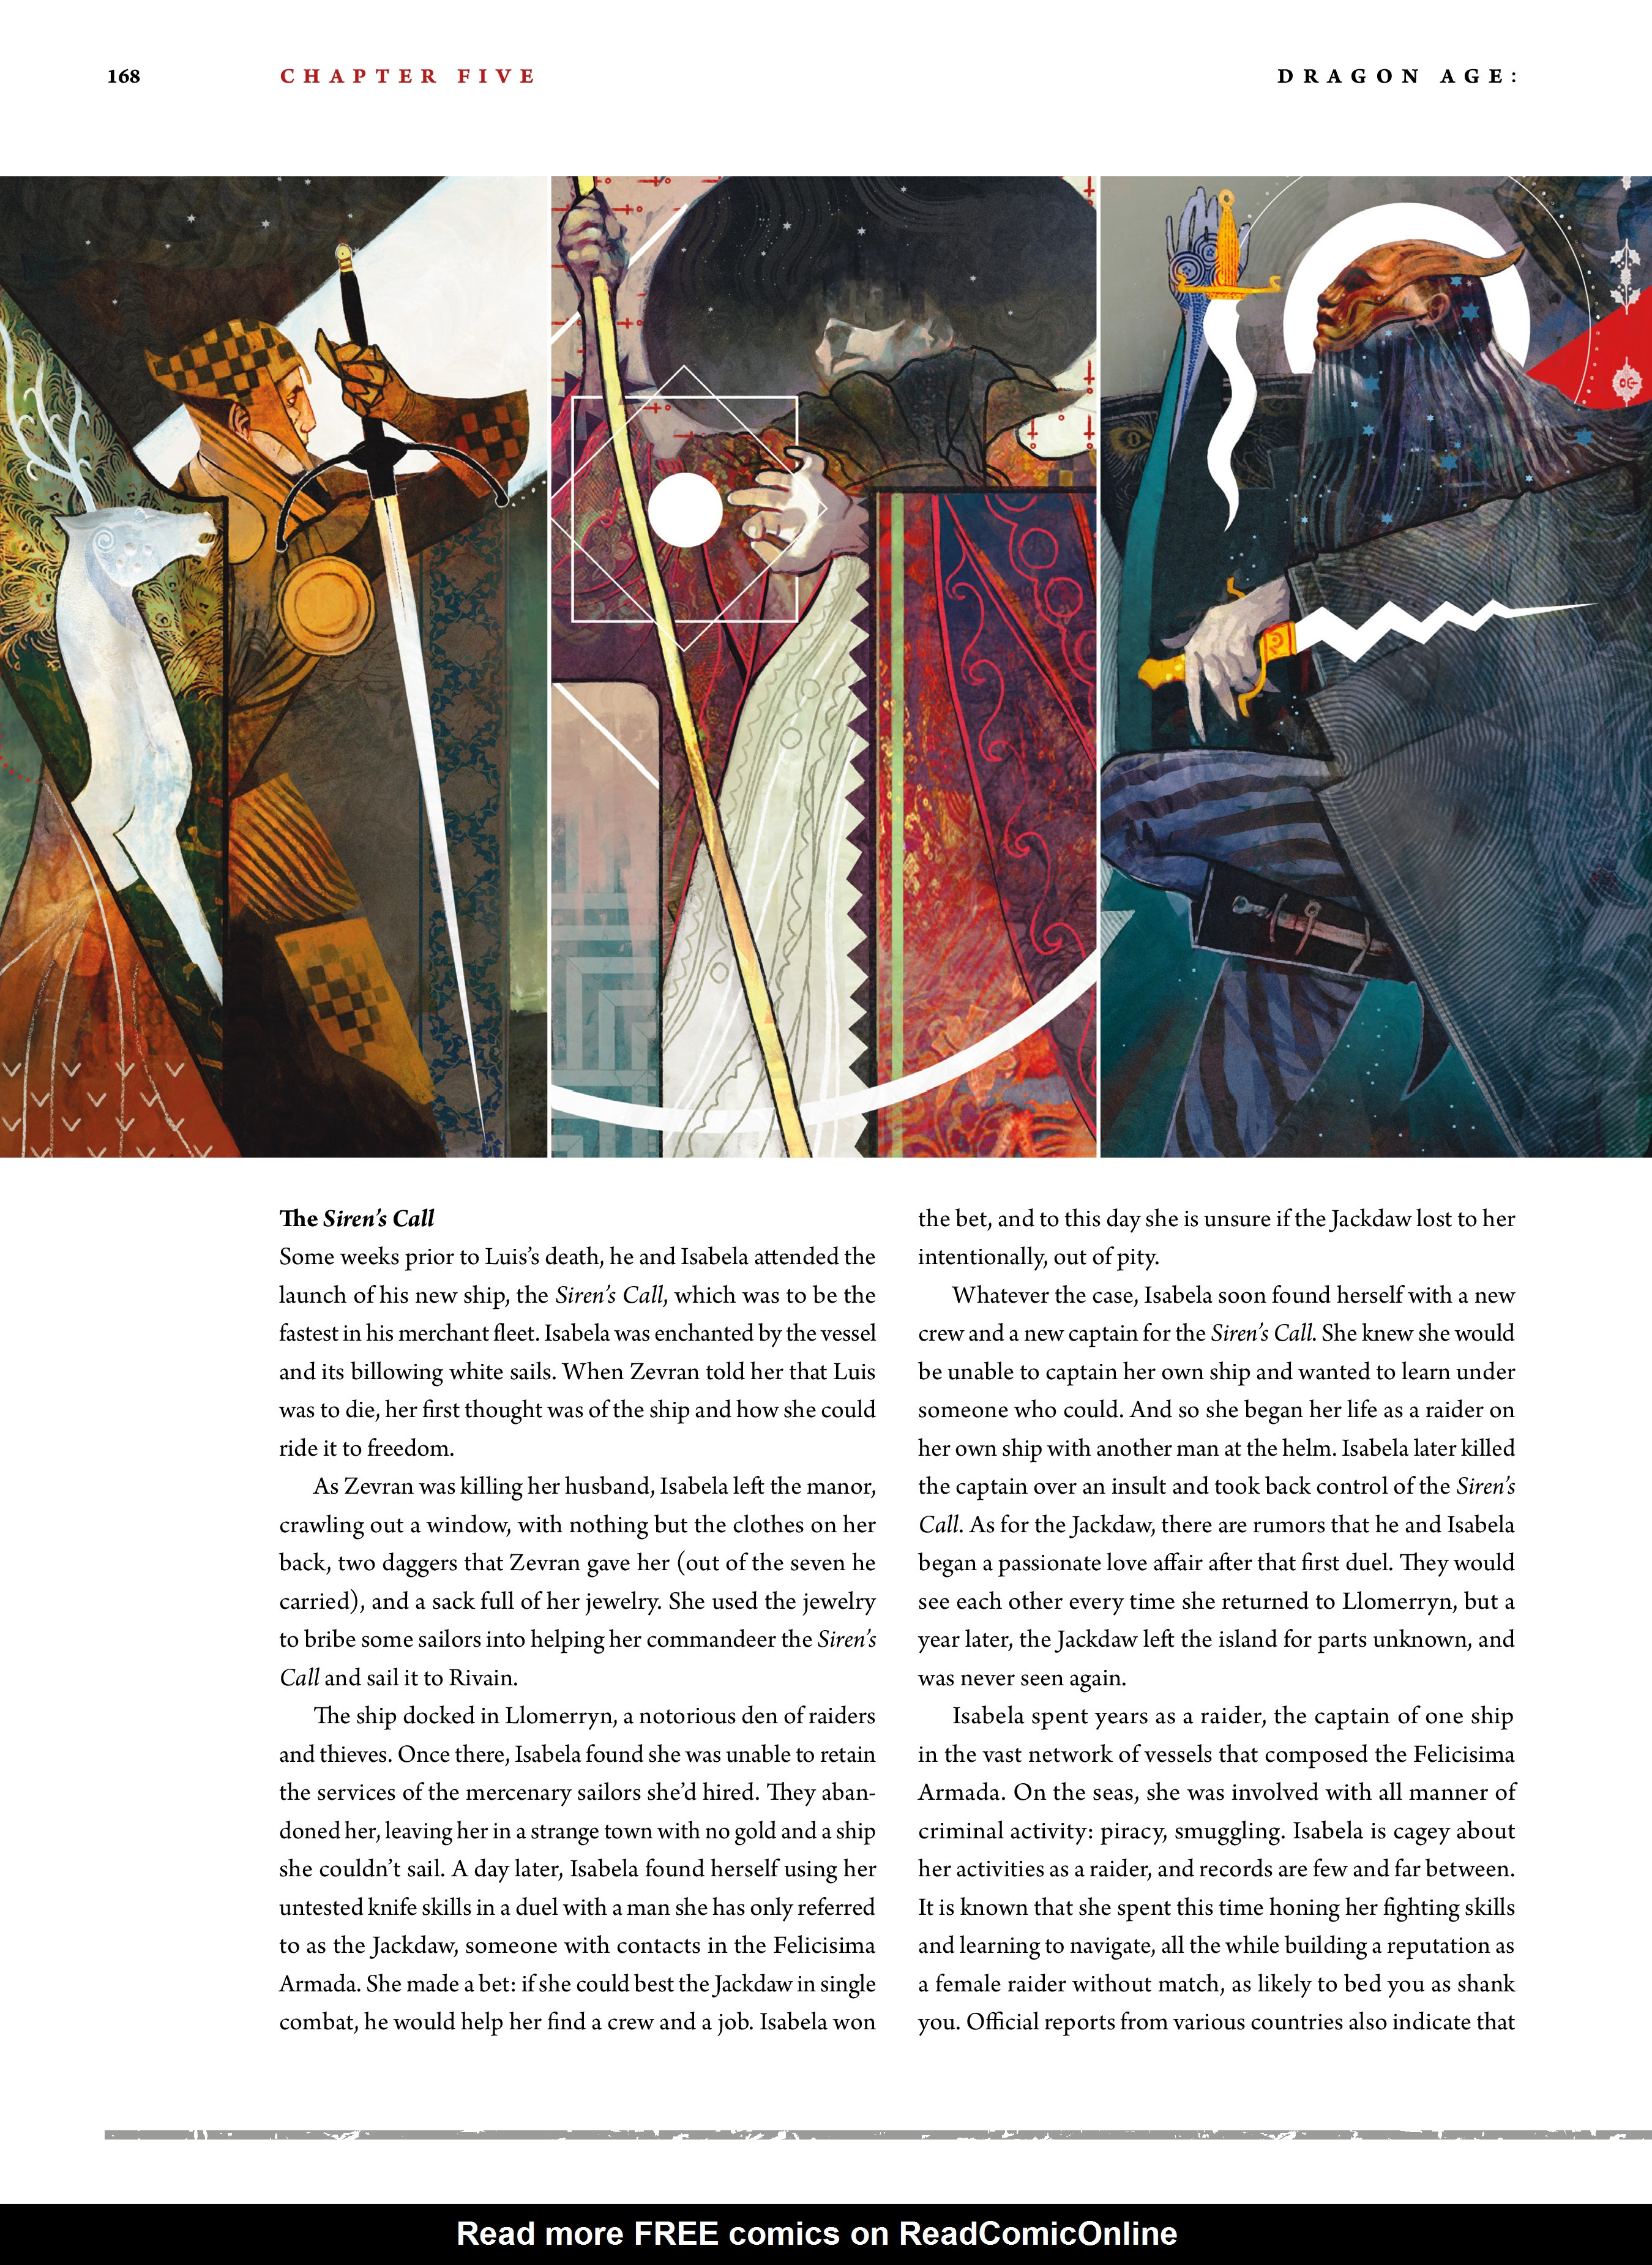 Read online Dragon Age: The World of Thedas comic -  Issue # TPB 2 - 163